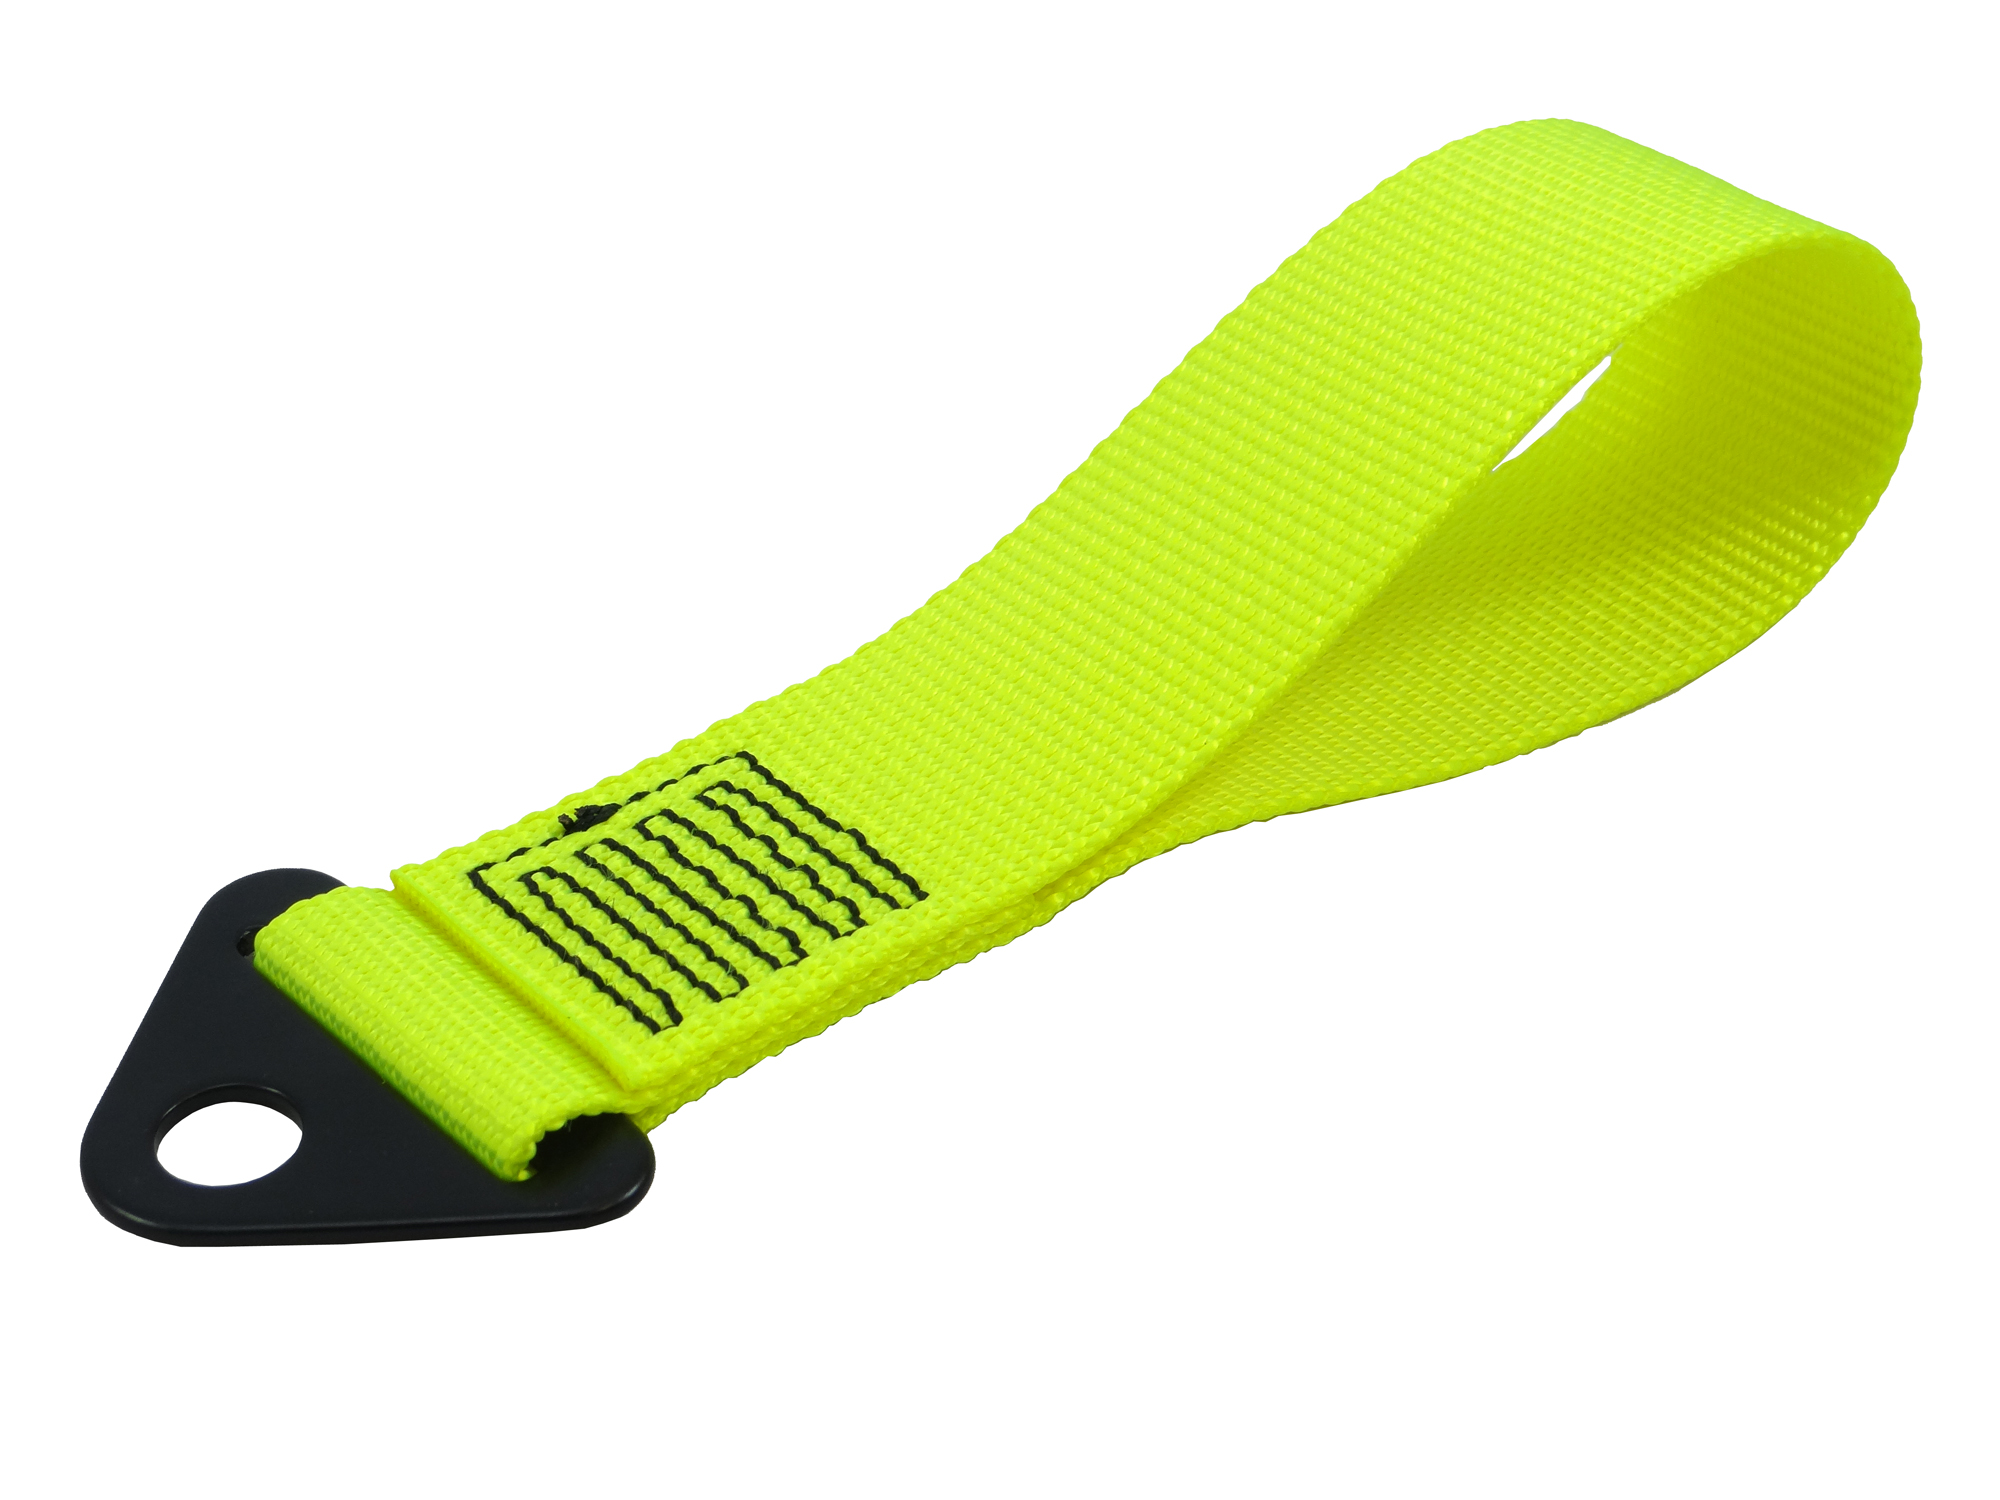 Tow Strap - Yellow - Without Flash